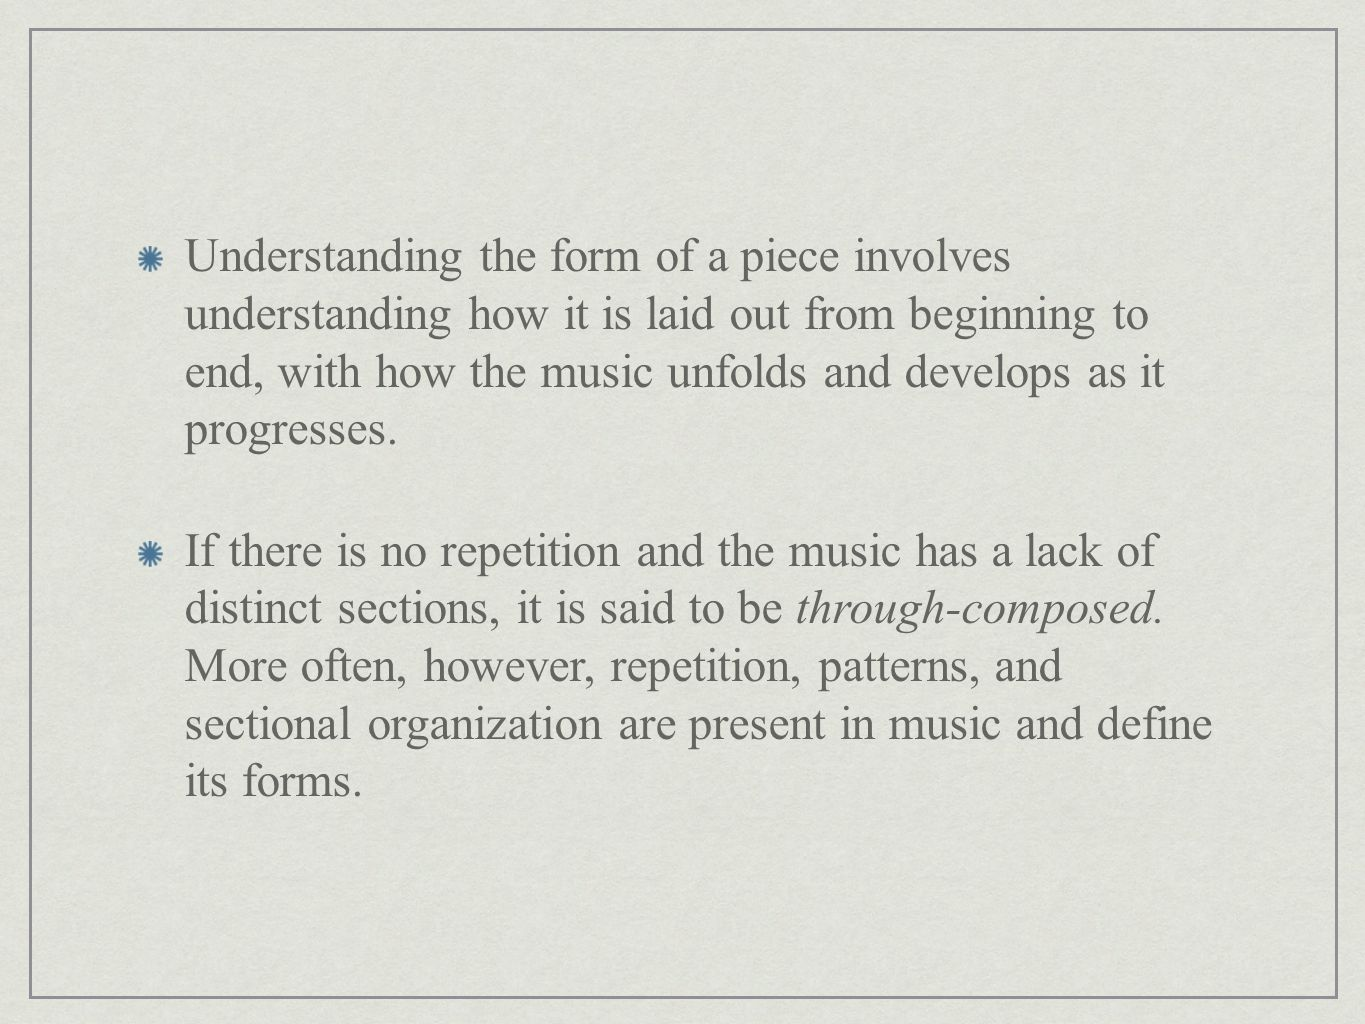 Understanding the form of a piece involves understanding how it is laid out from beginning to end, with how the music unfolds and develops as it progr